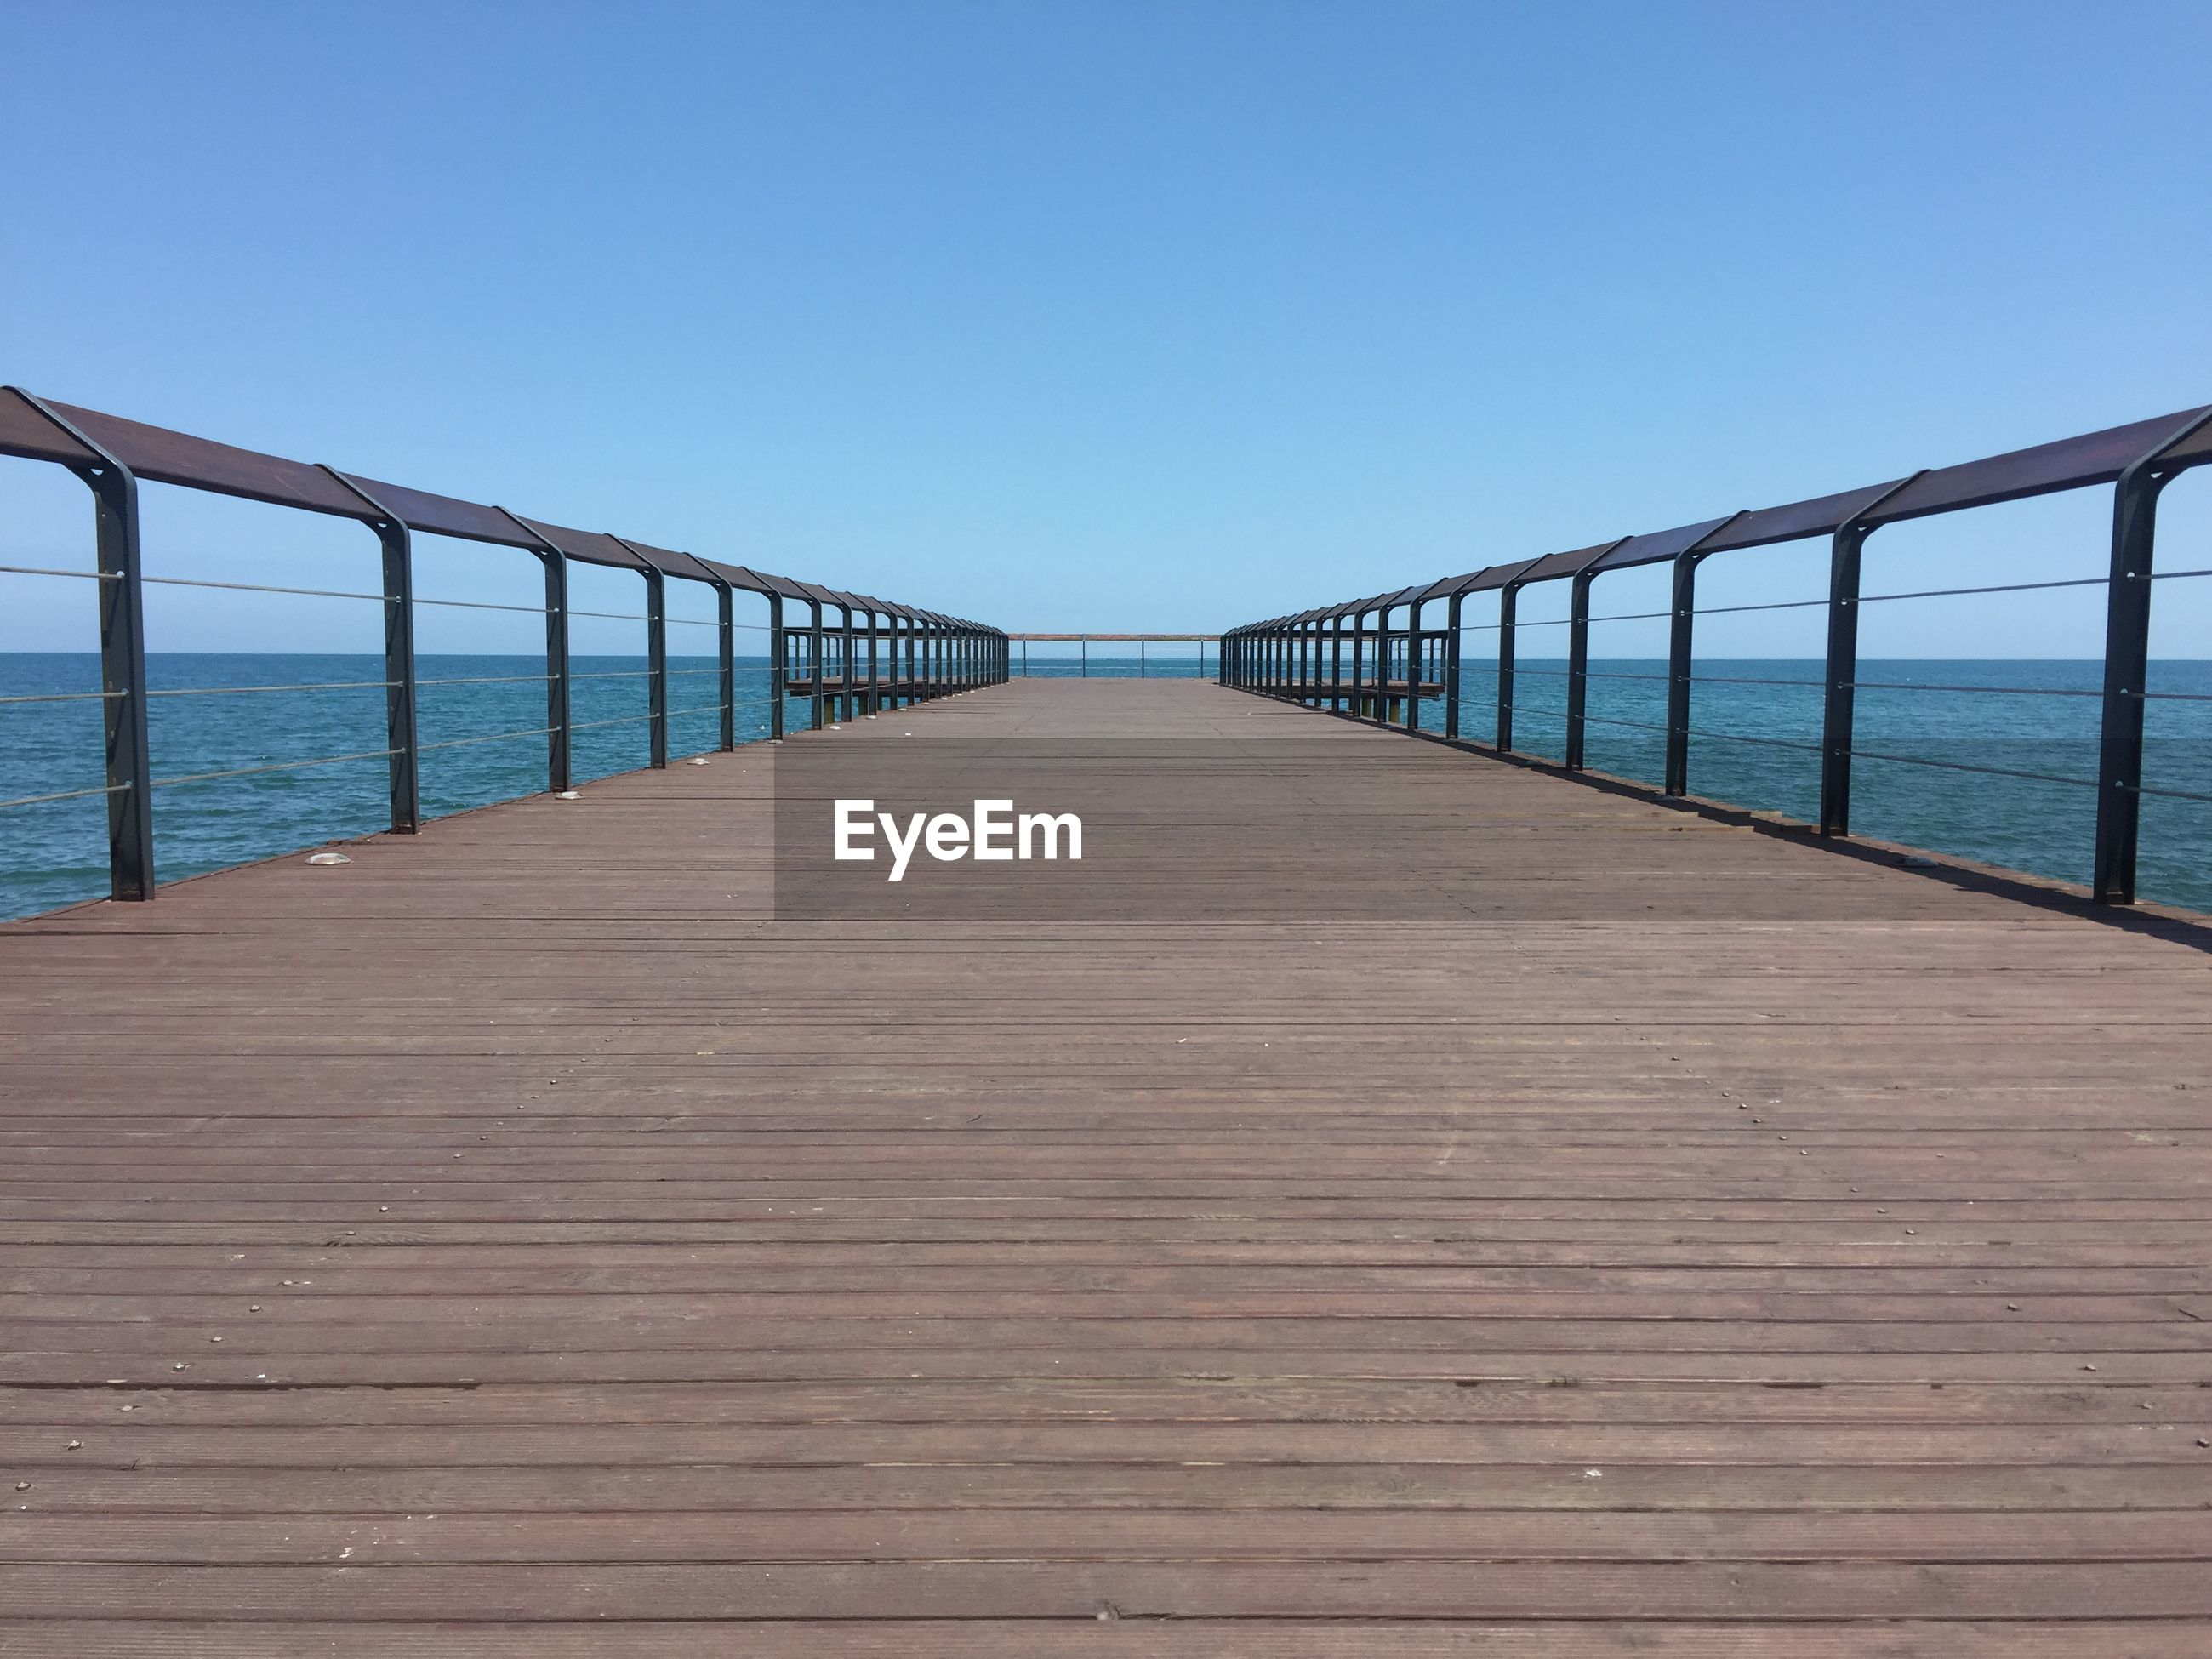 VIEW OF PIER AGAINST CLEAR BLUE SKY